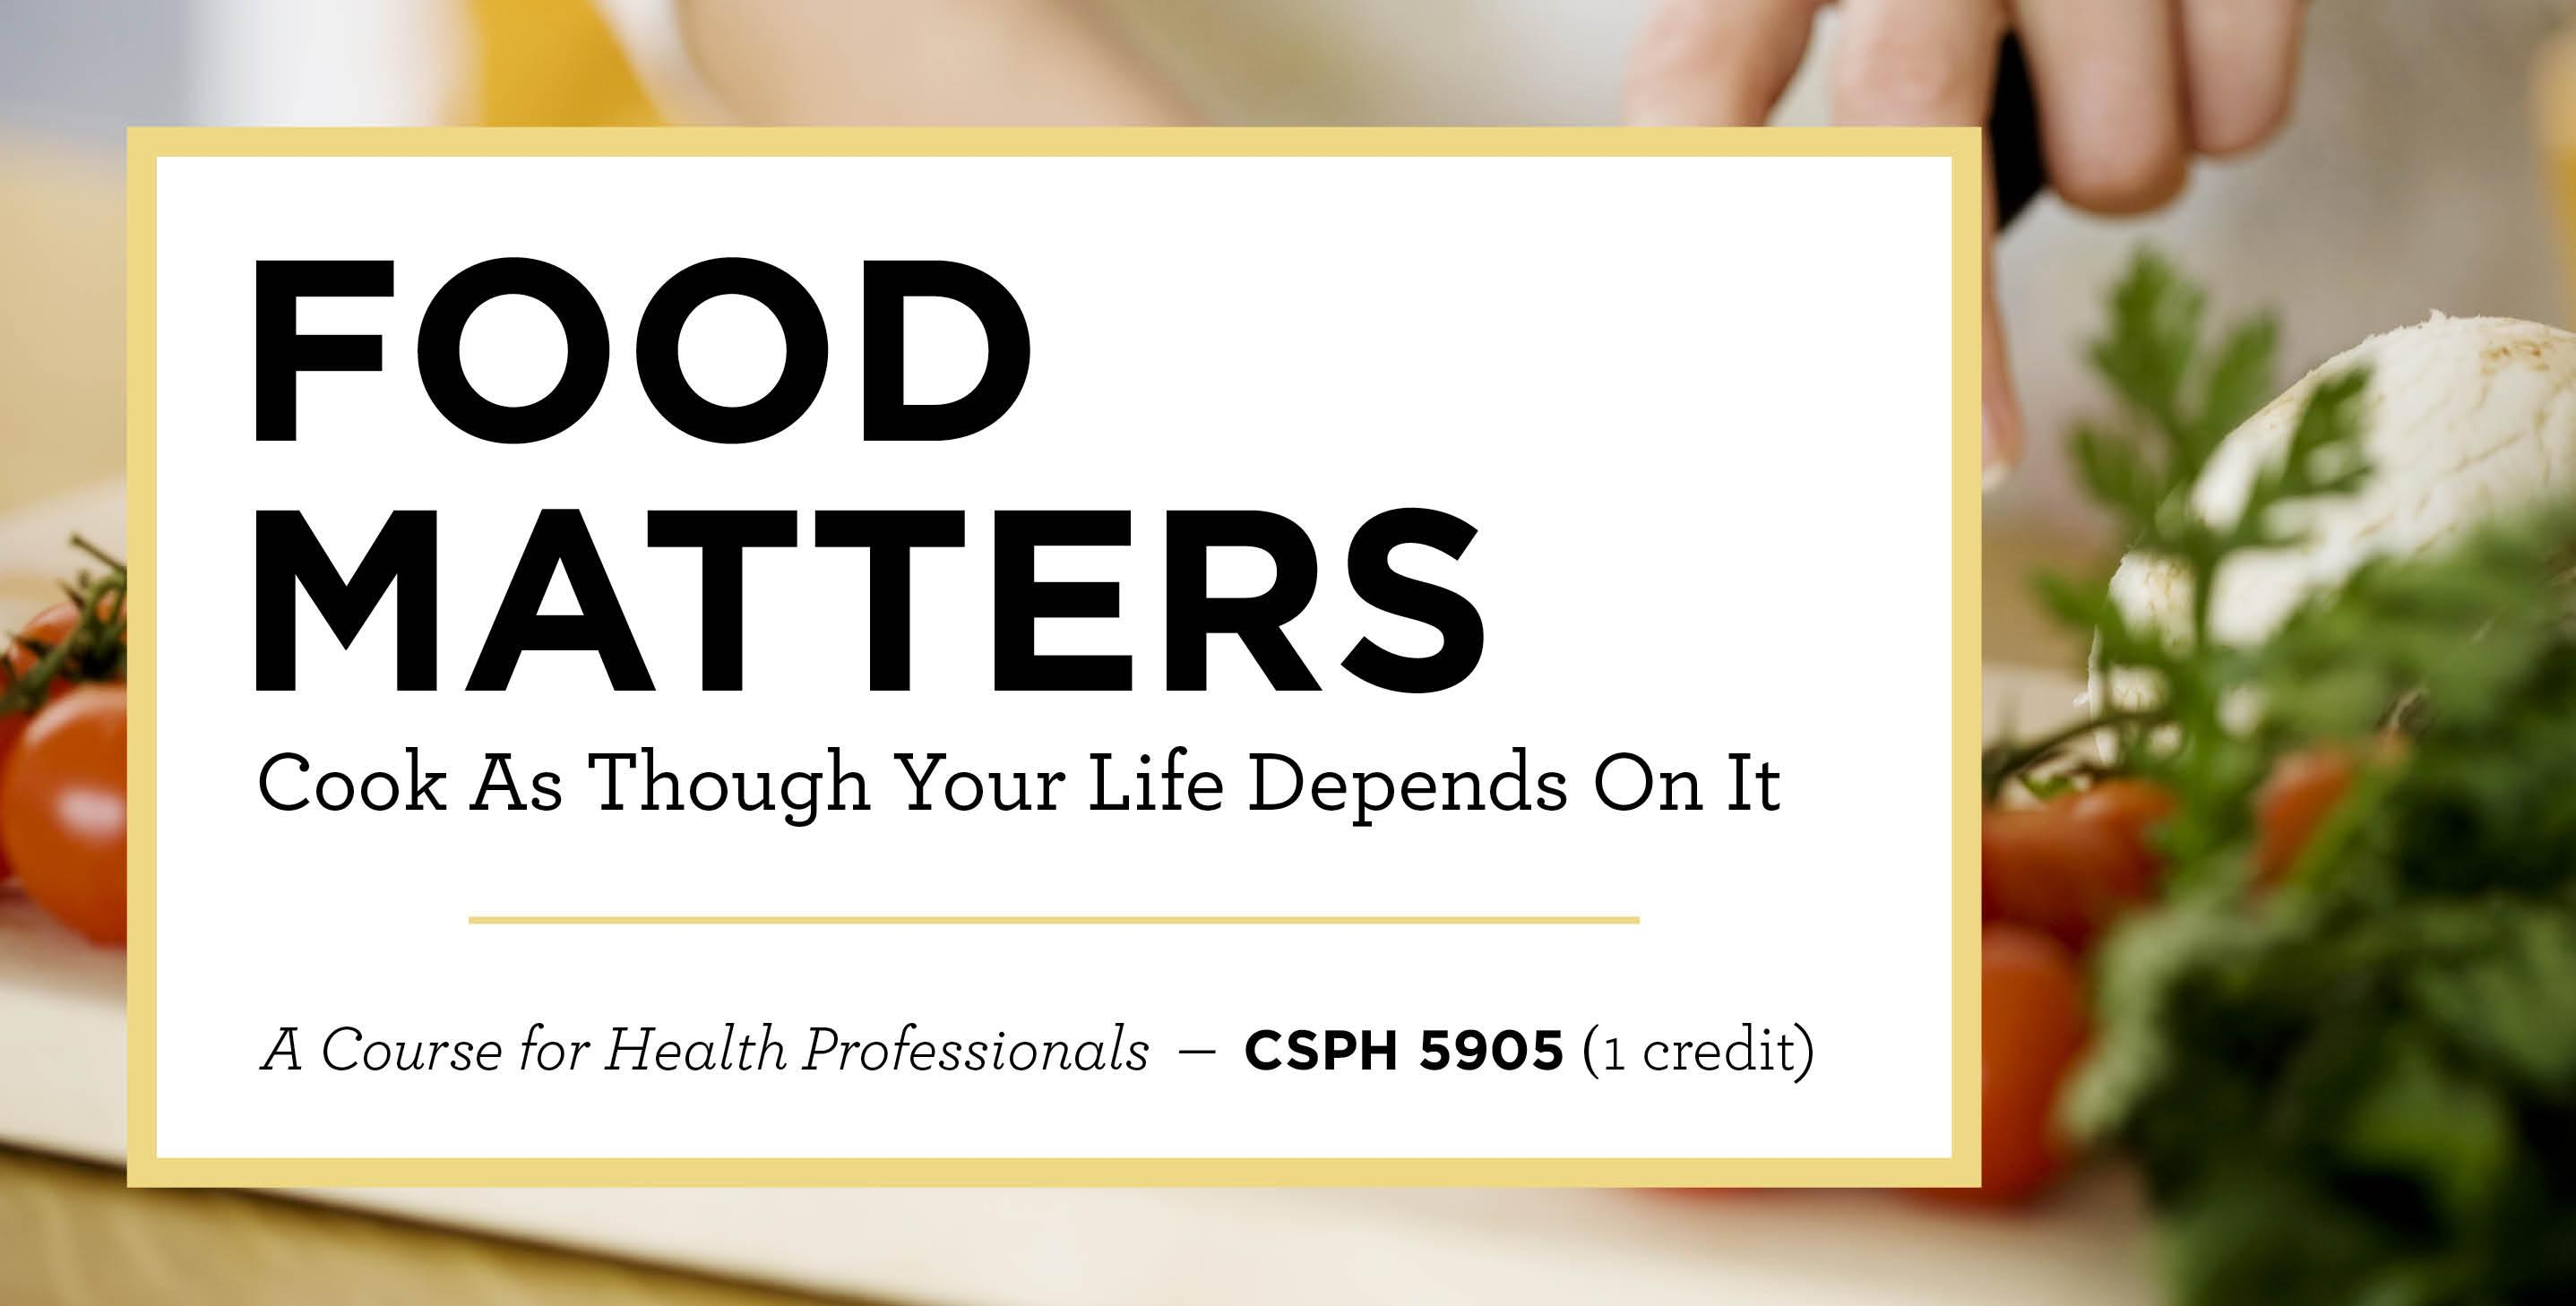 Food Matters: Cook as though your life depends on it